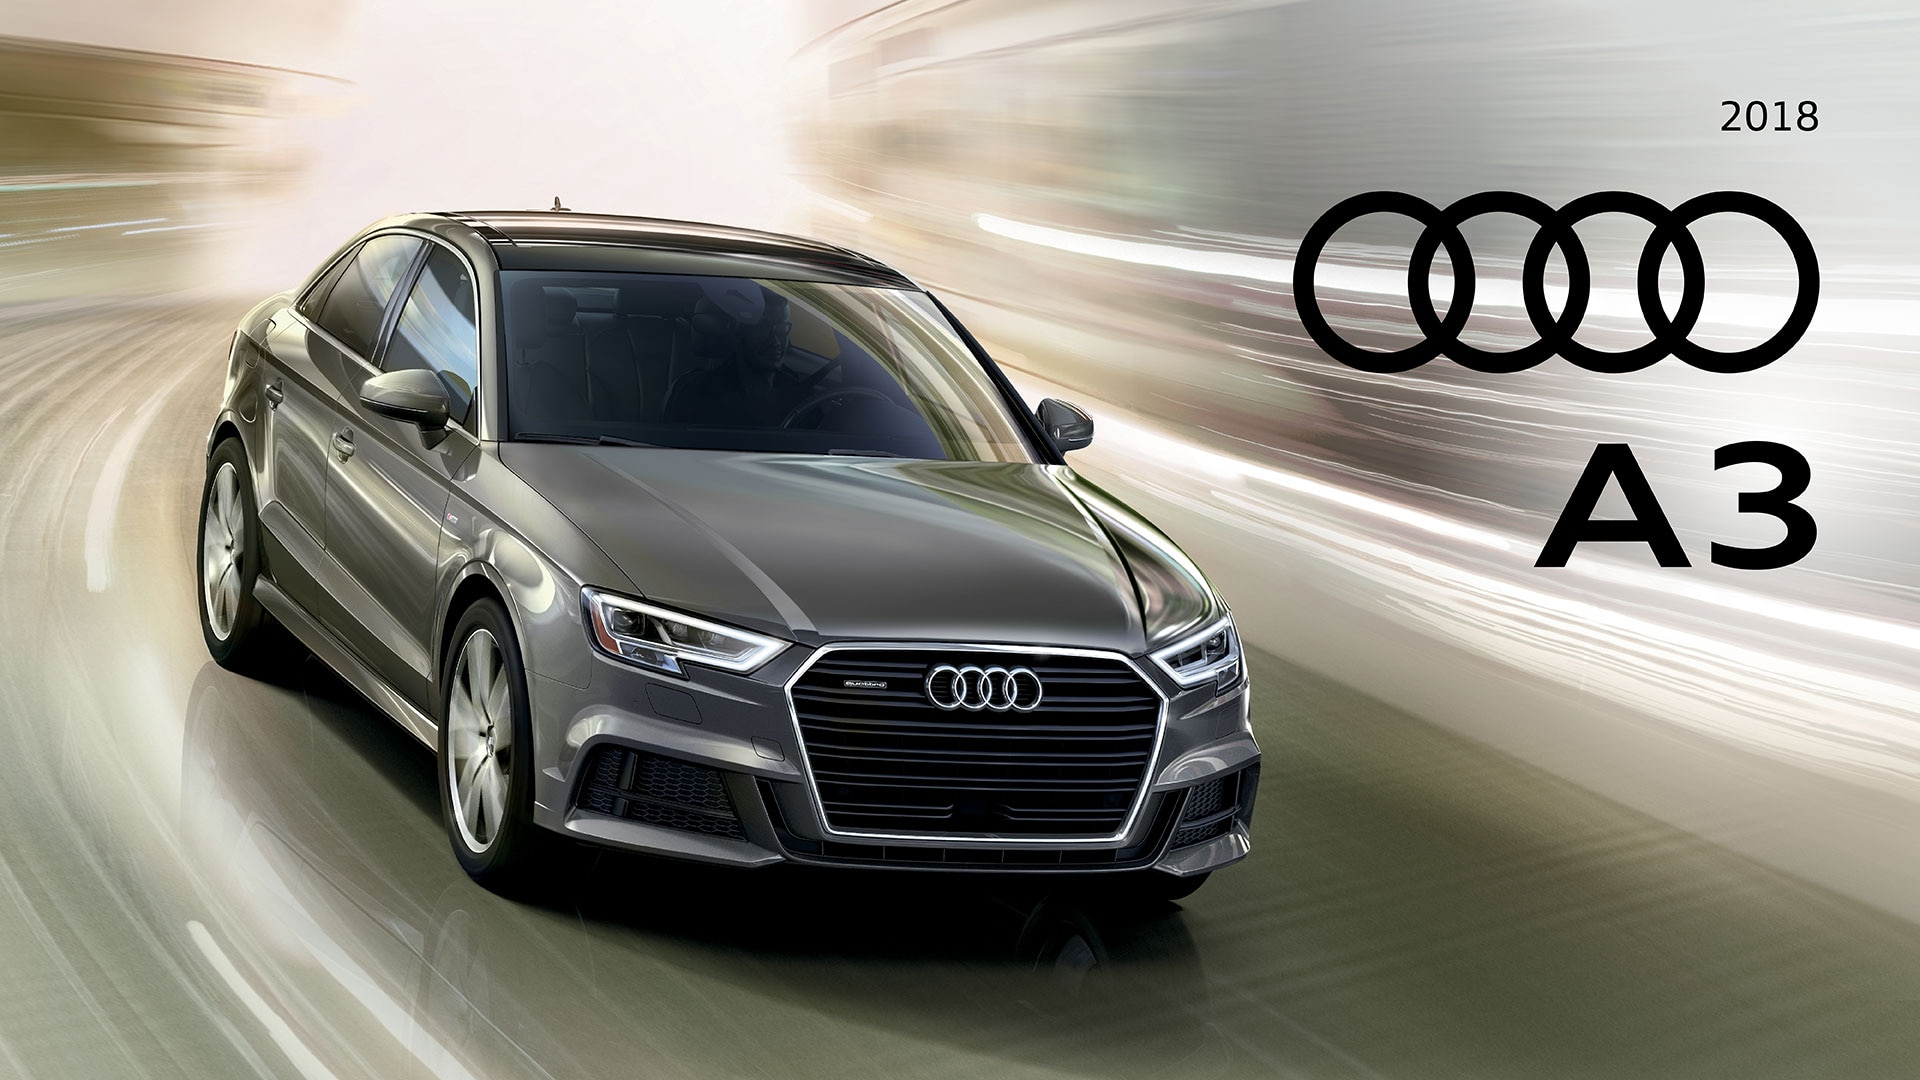 2018 audi x3. contemporary 2018 view 2018 a3 cabriolet brochure  and audi x3